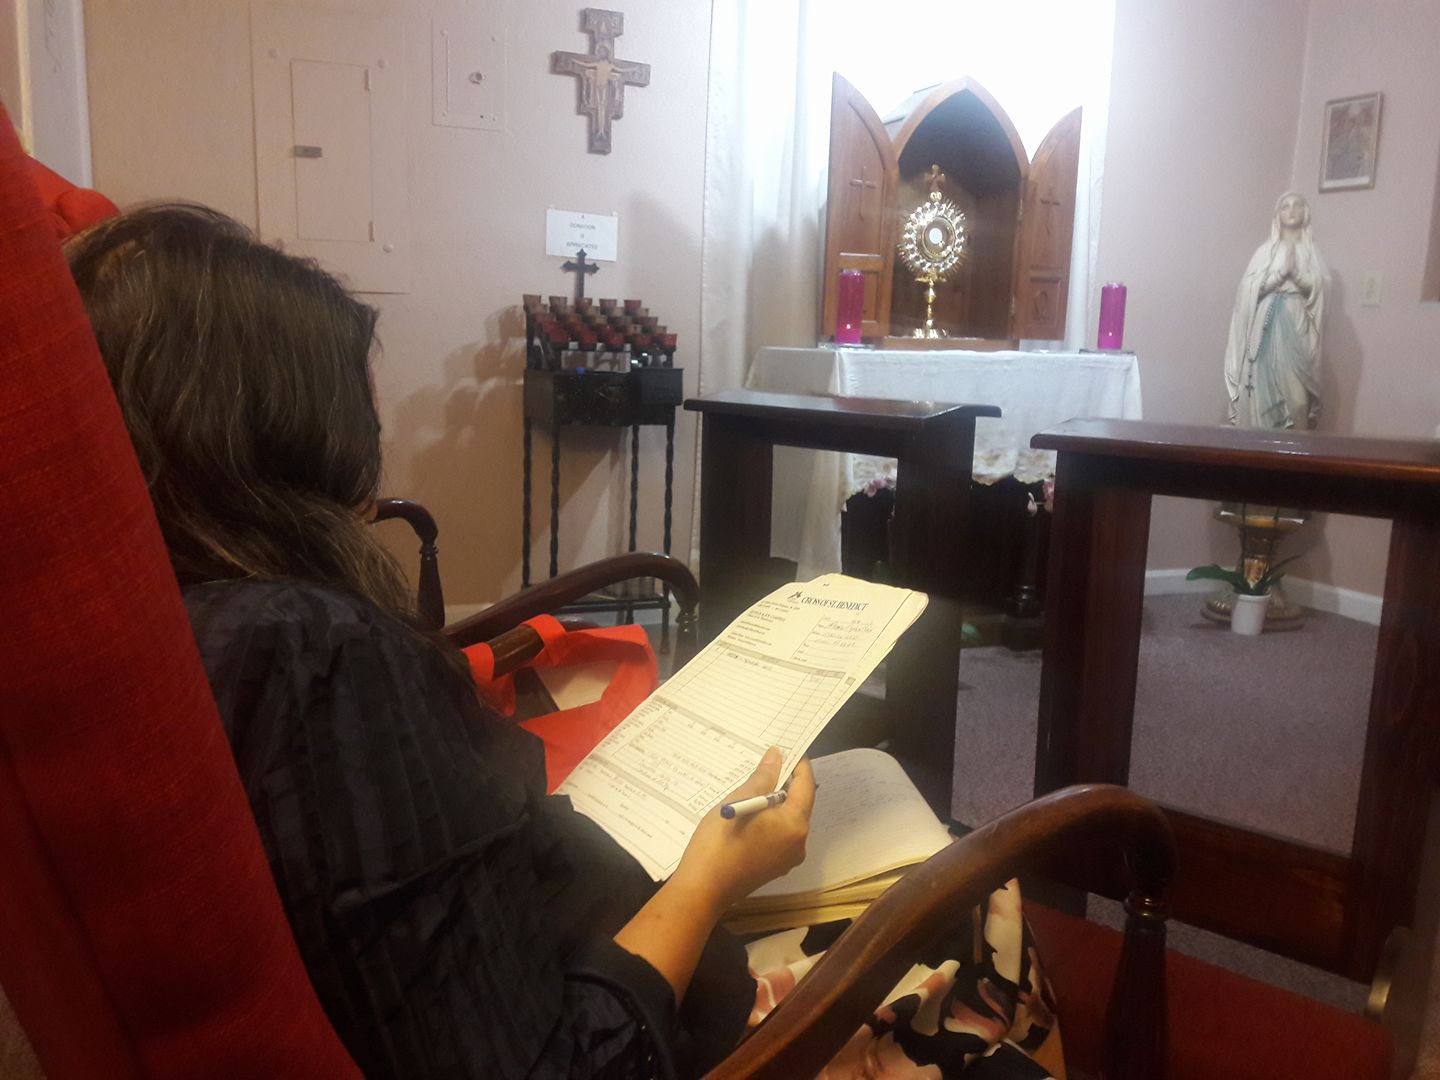 reading-society-members-intention-in-the-eucharist-twice-a-week.jpg